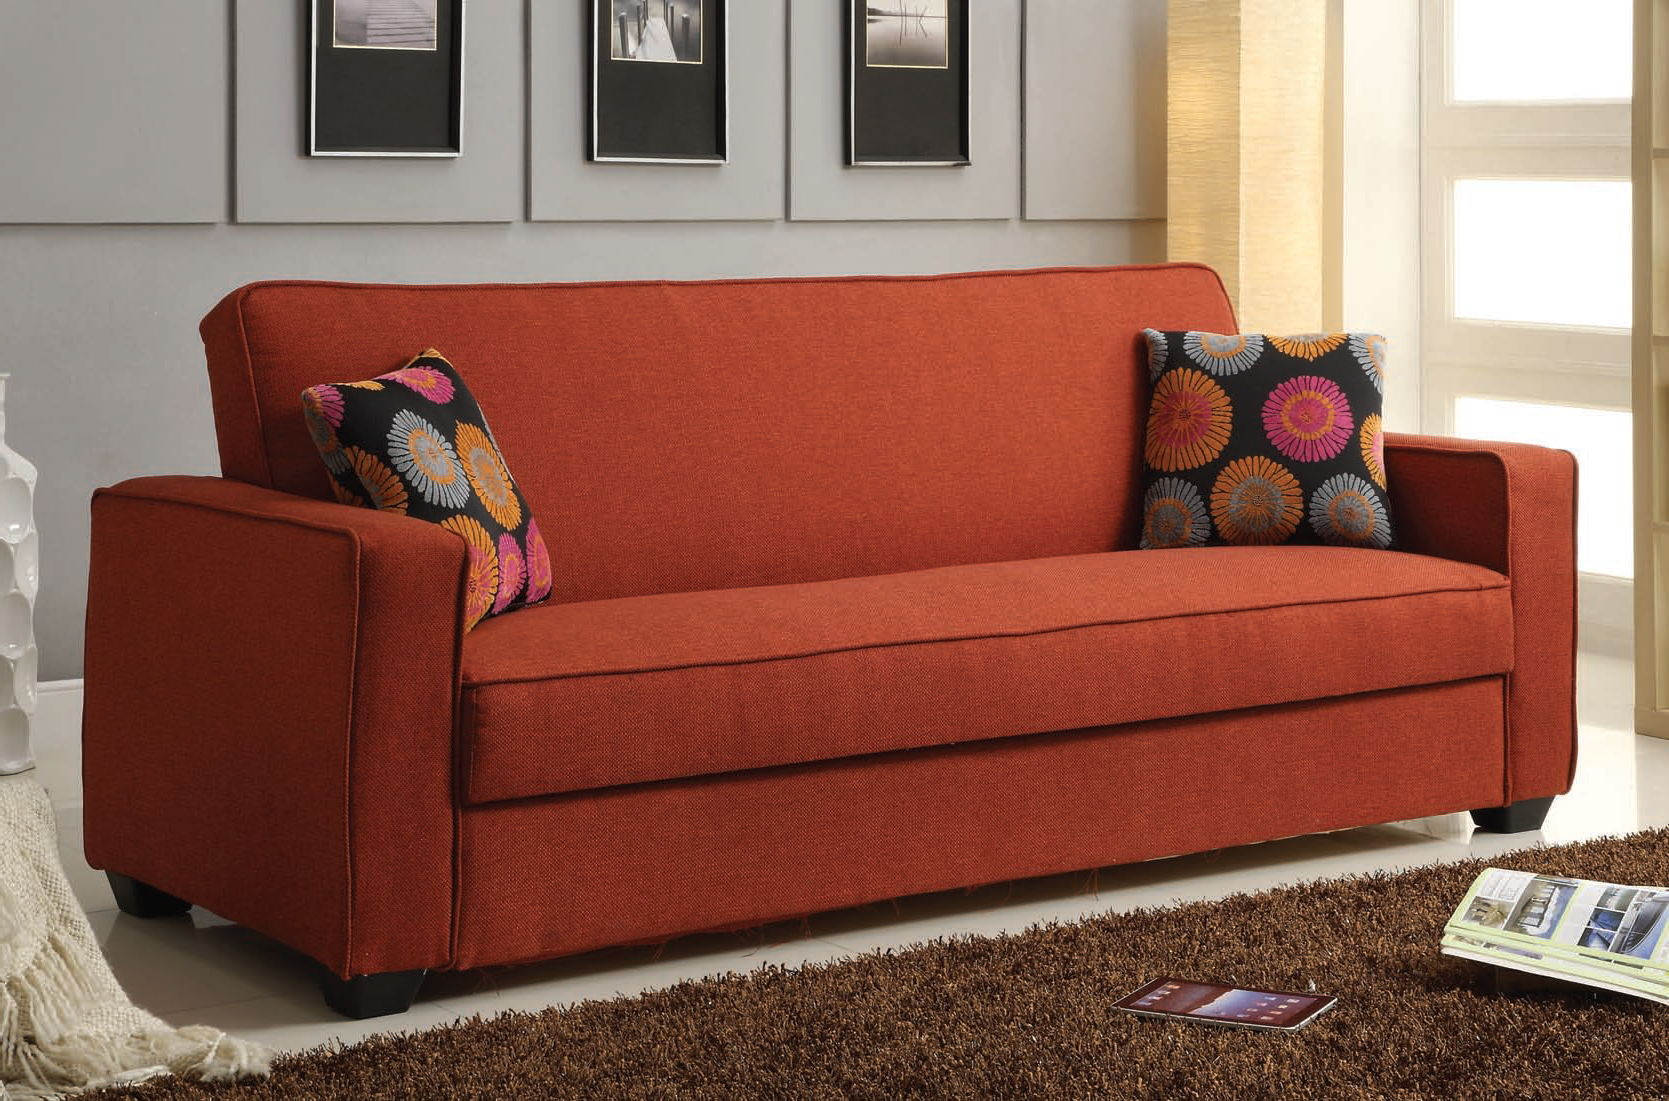 Acme Furniture Shani Red Adjustable Sofa The Classy Home